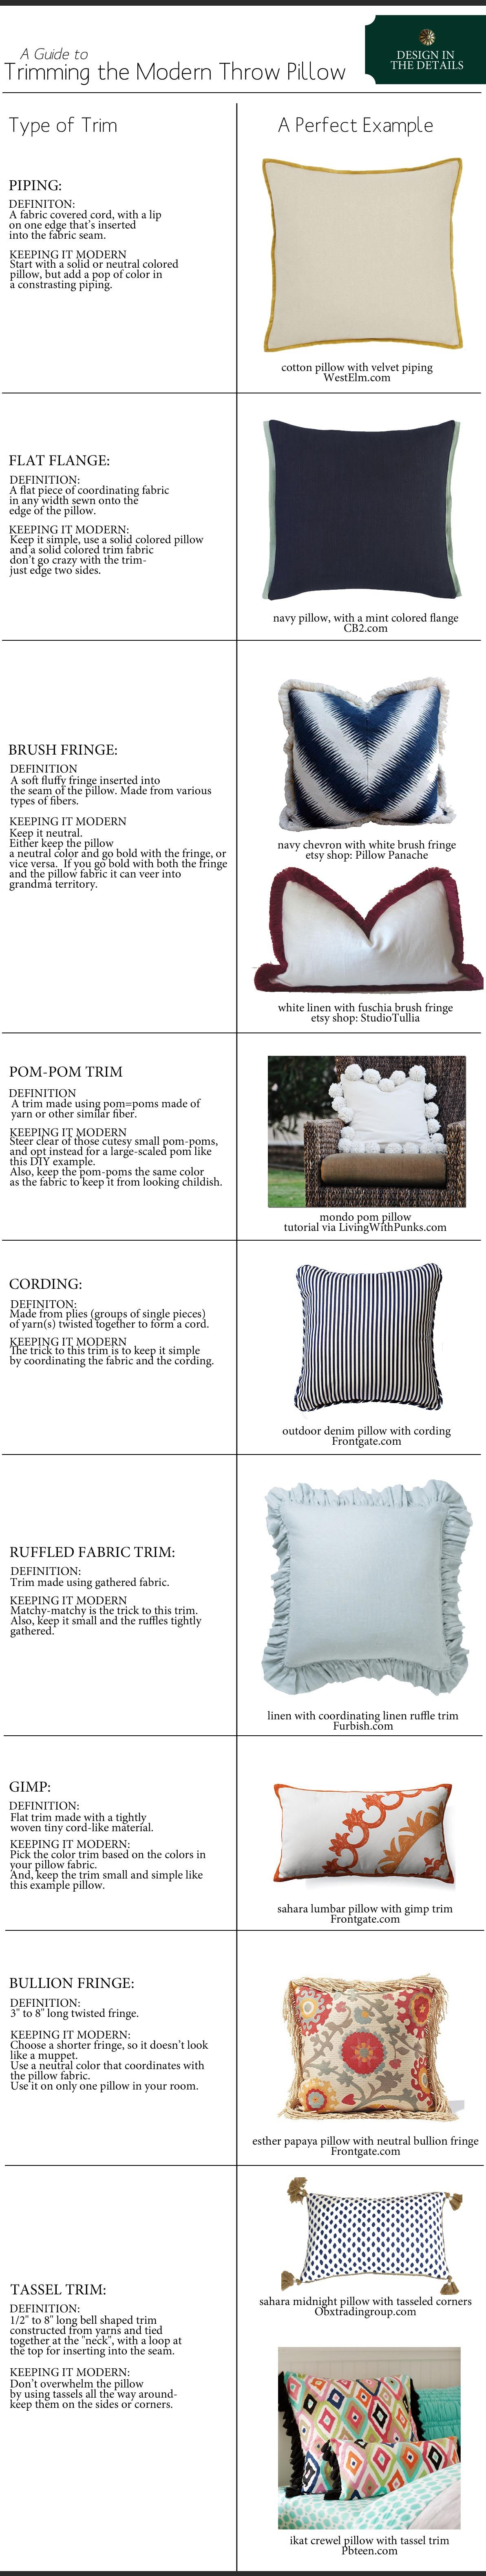 A Guide for Trimming the Modern Throw Pillow